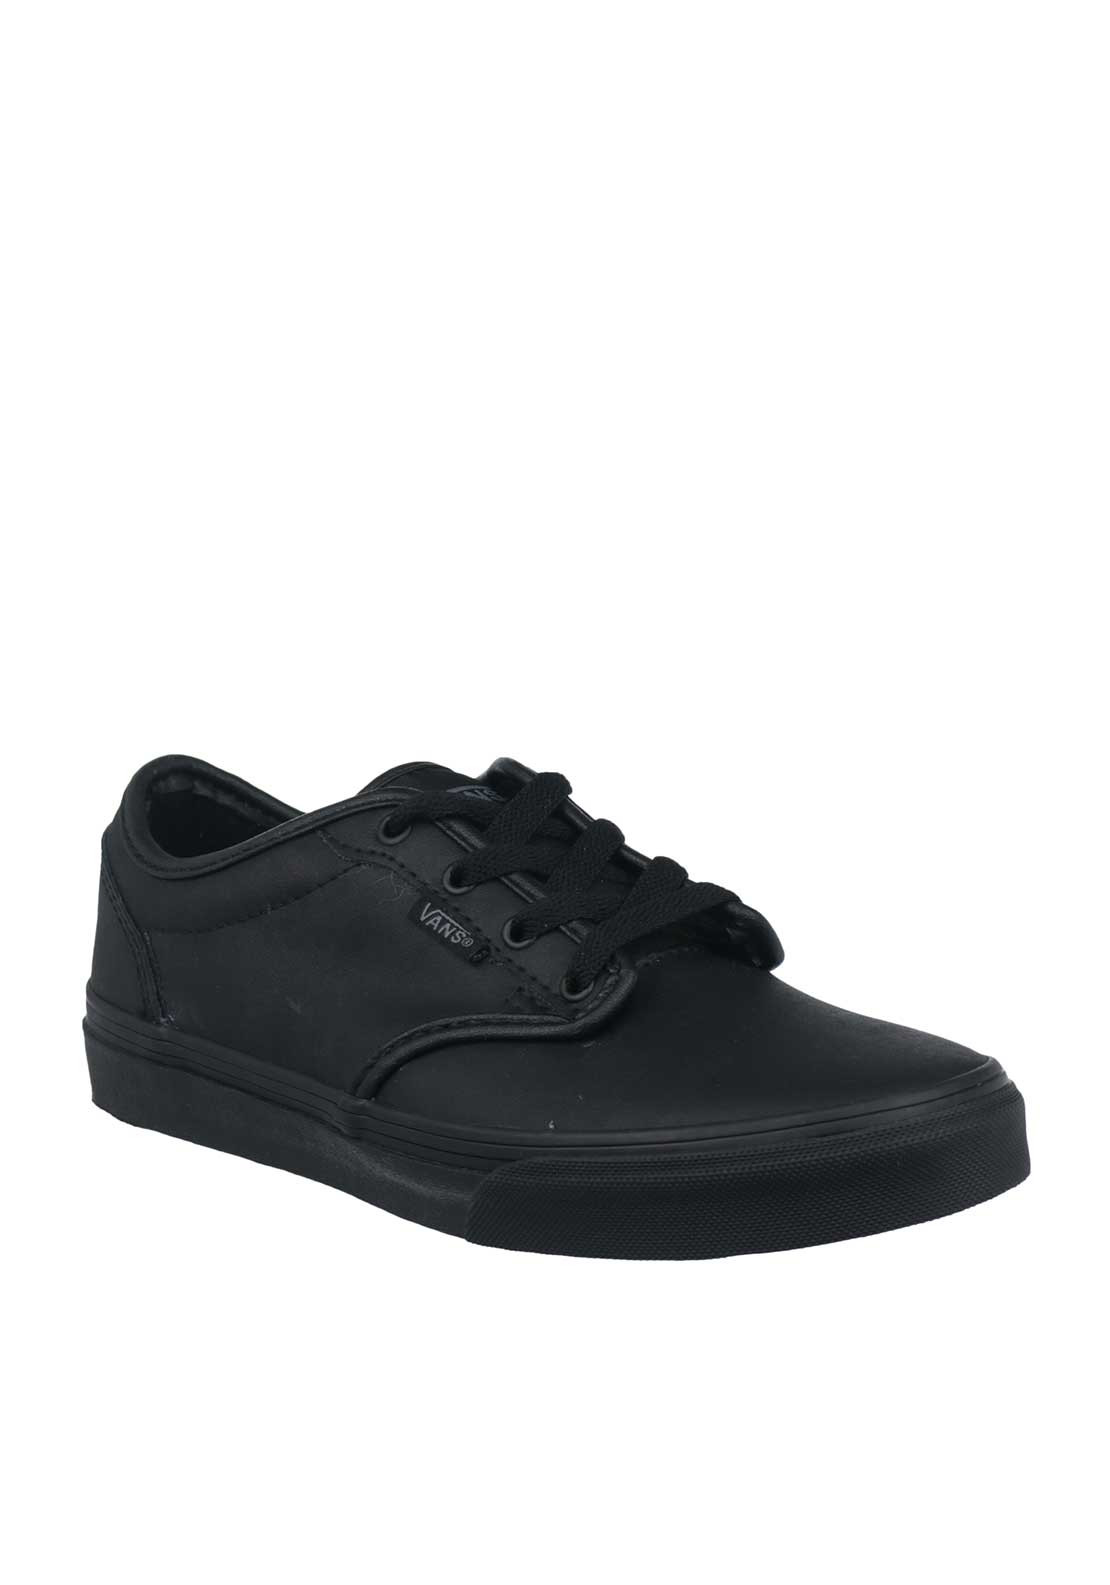 vans leather laced school shoes black mcelhinneys